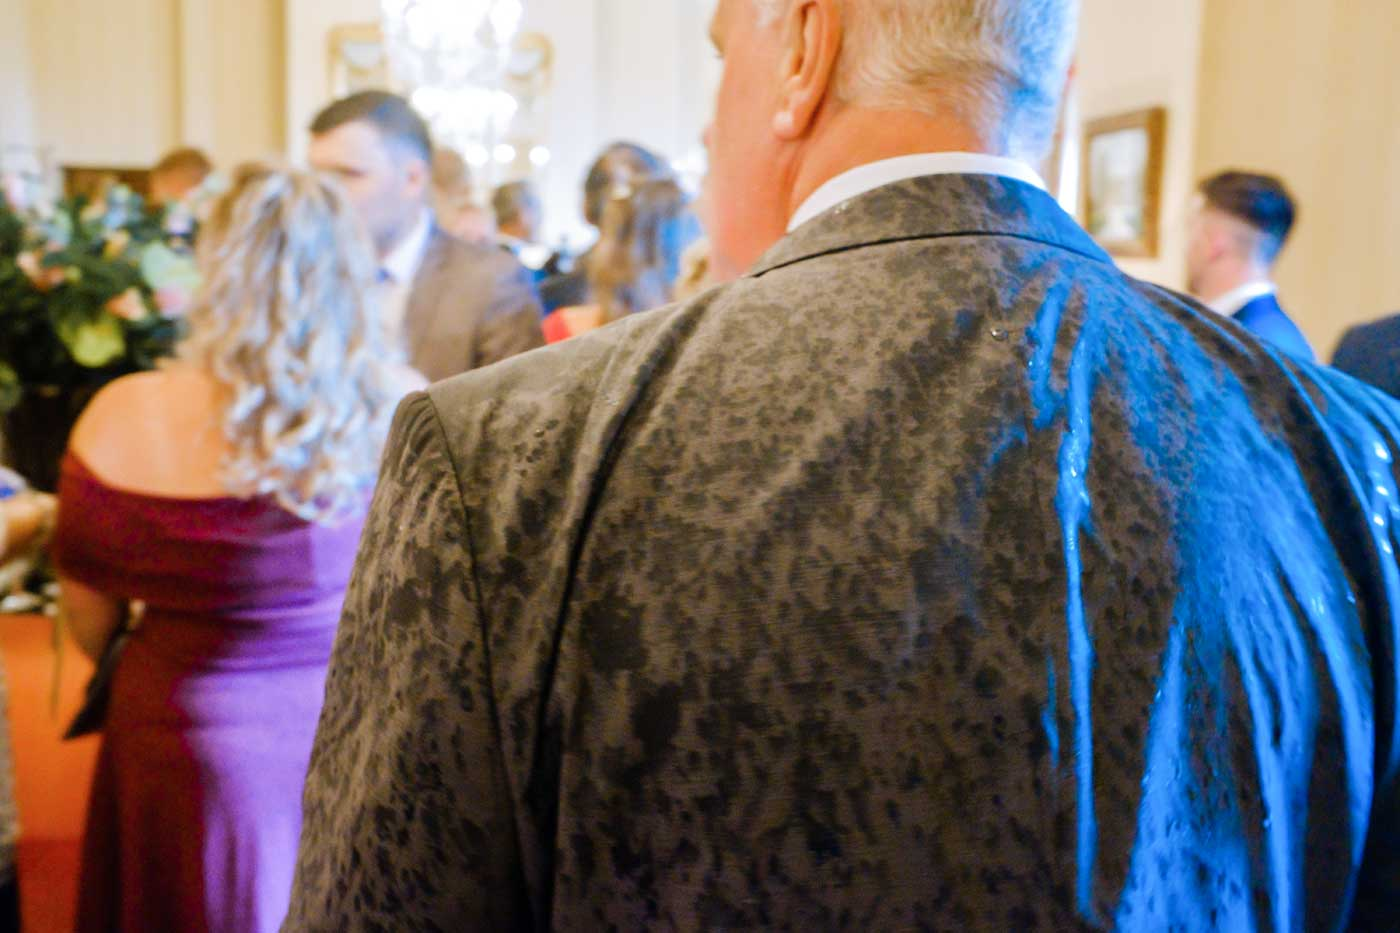 Rain soaked jacket after a sudden downpour of rain at a Rowton Castle wedding